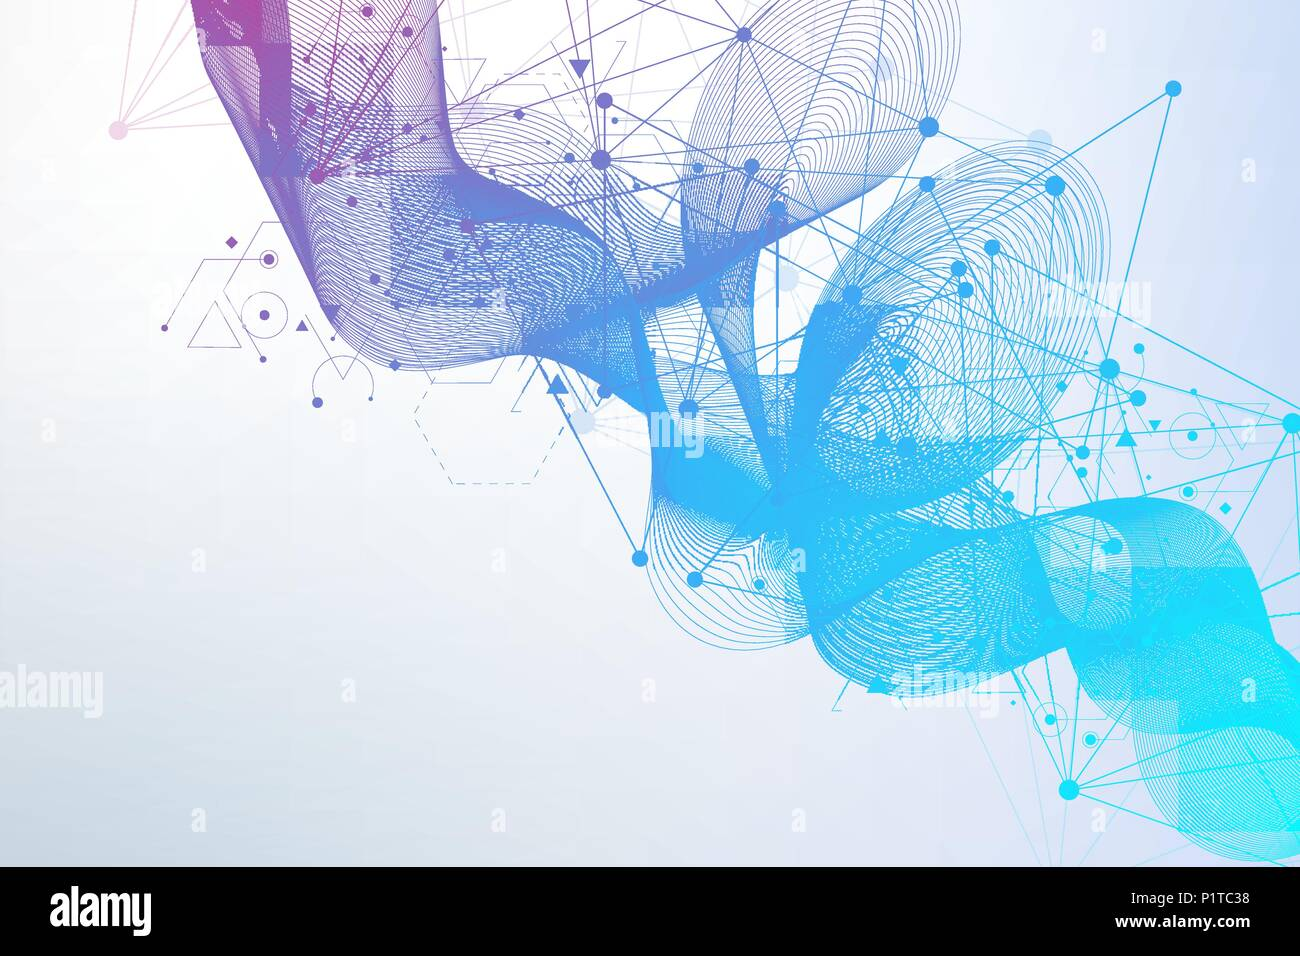 Geometric abstract background with connected line and dots. Structure molecule and communication. Scientific concept for your design. Medical, technology, science background. Vector illustration. - Stock Image